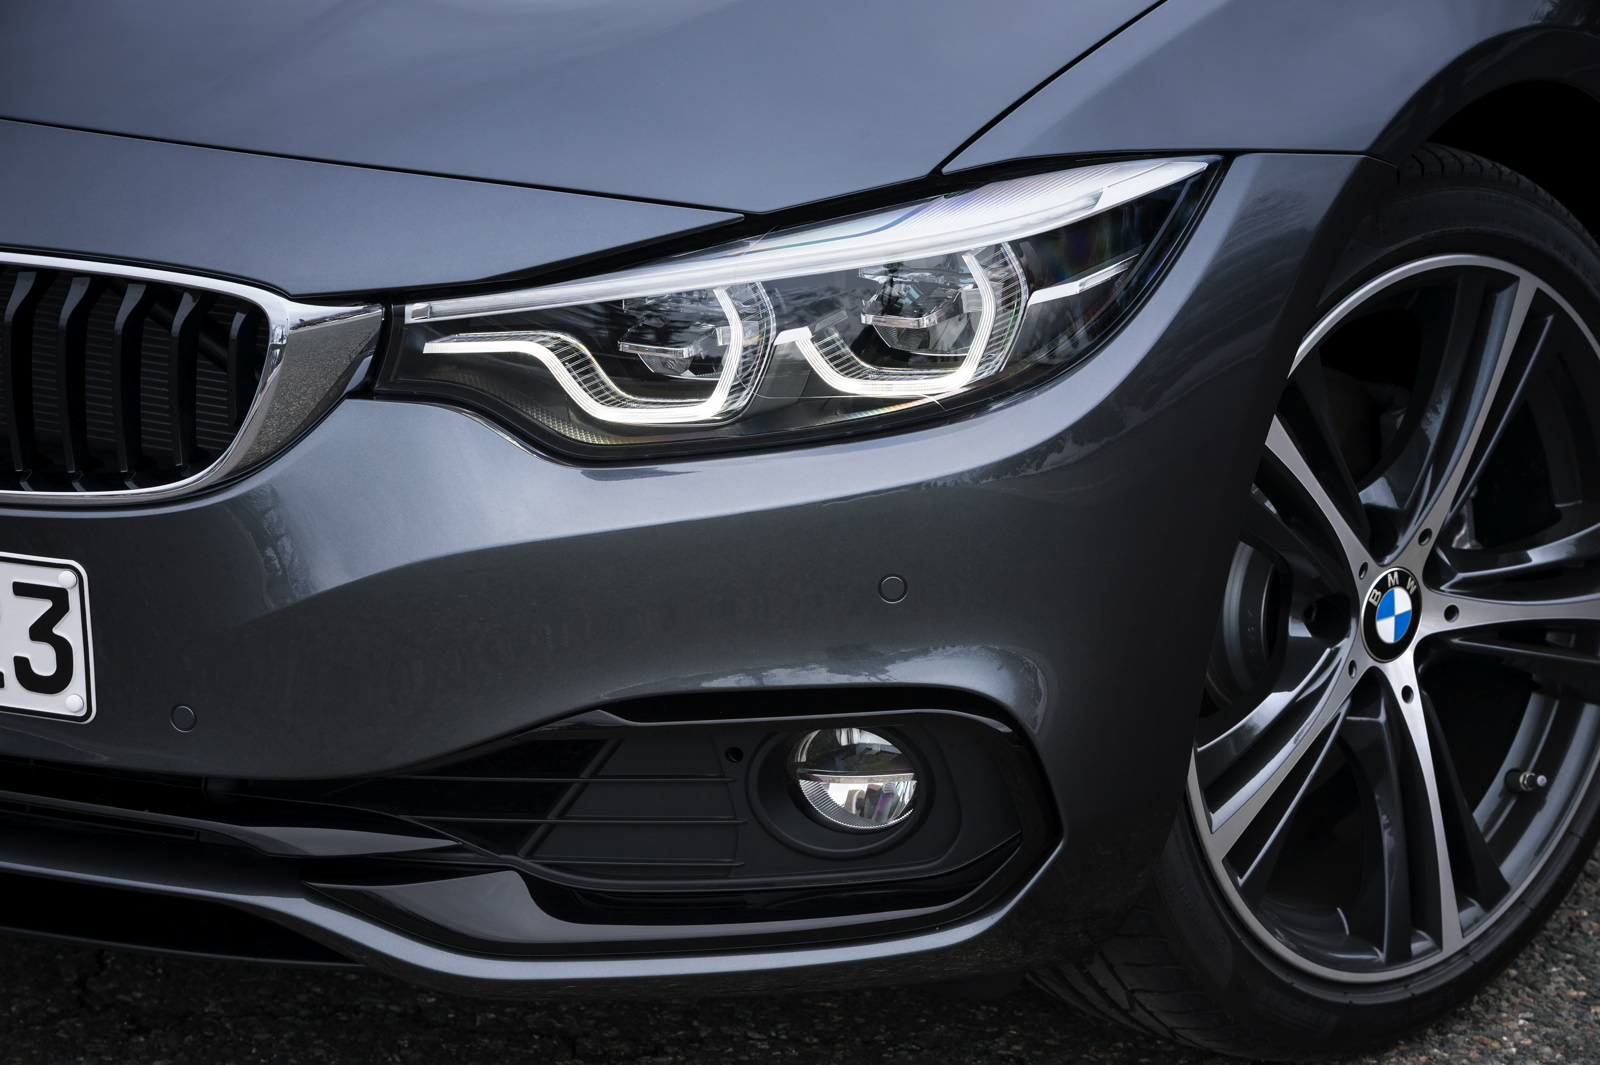 Bmw Of Newton >> 2017 BMW 4 Series Gran Coupe Facelift - Photo Gallery